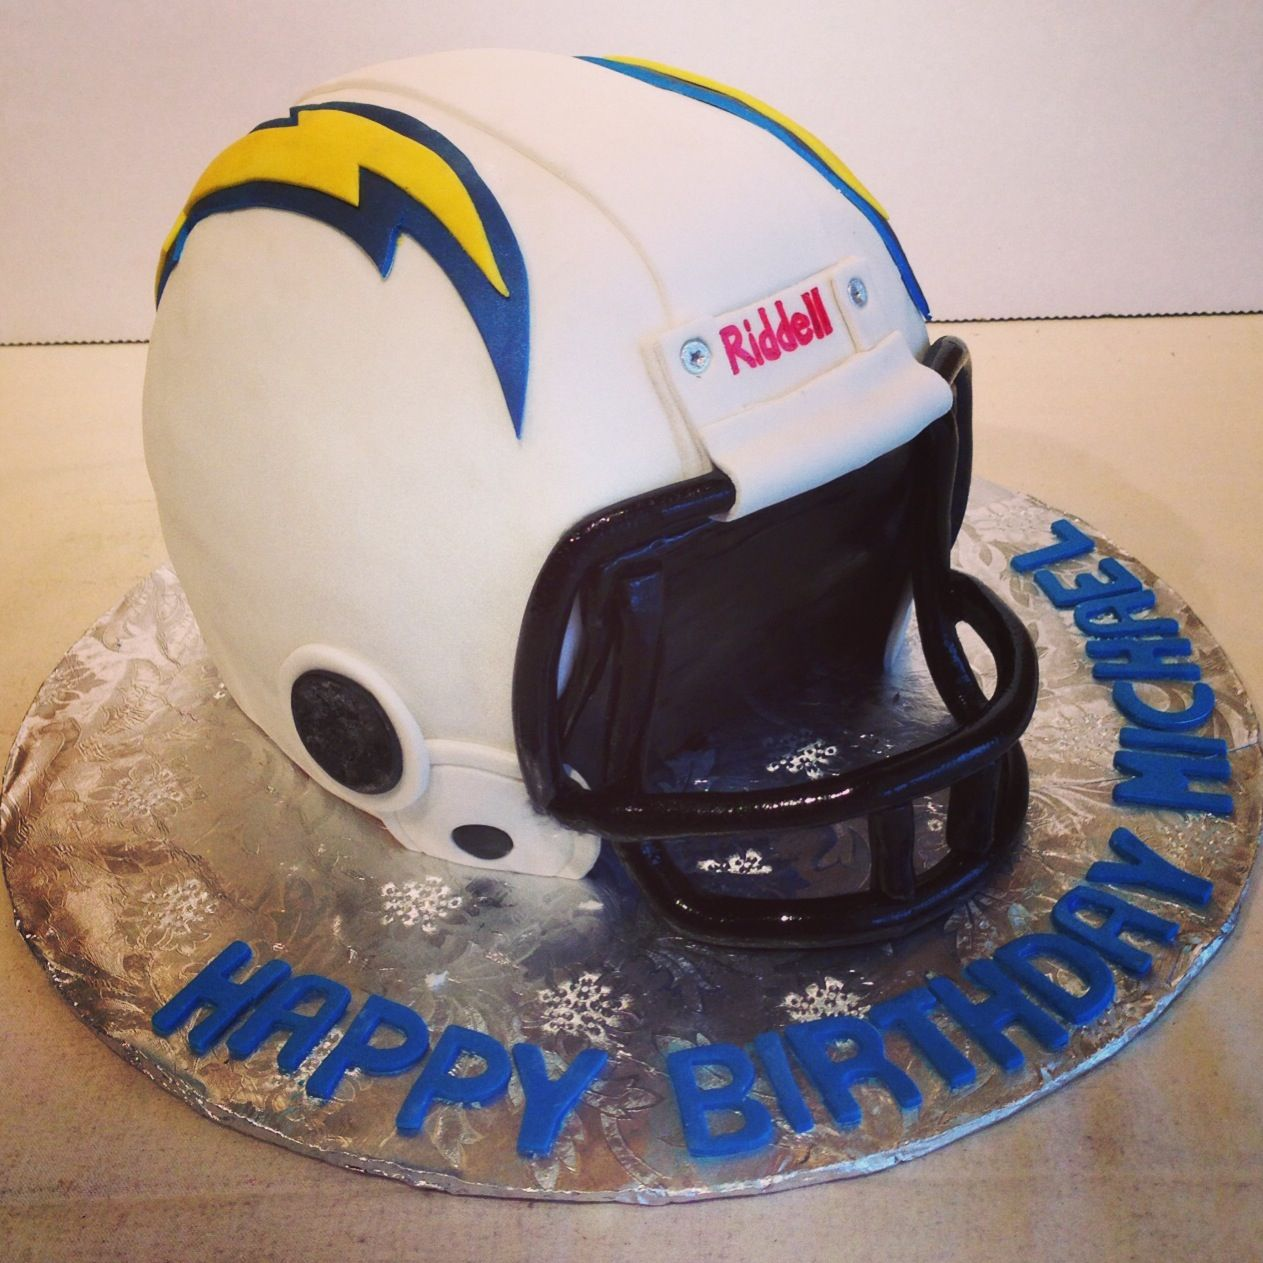 San Diego Chargers Cake: San Diego Chargers Helmet Cake.